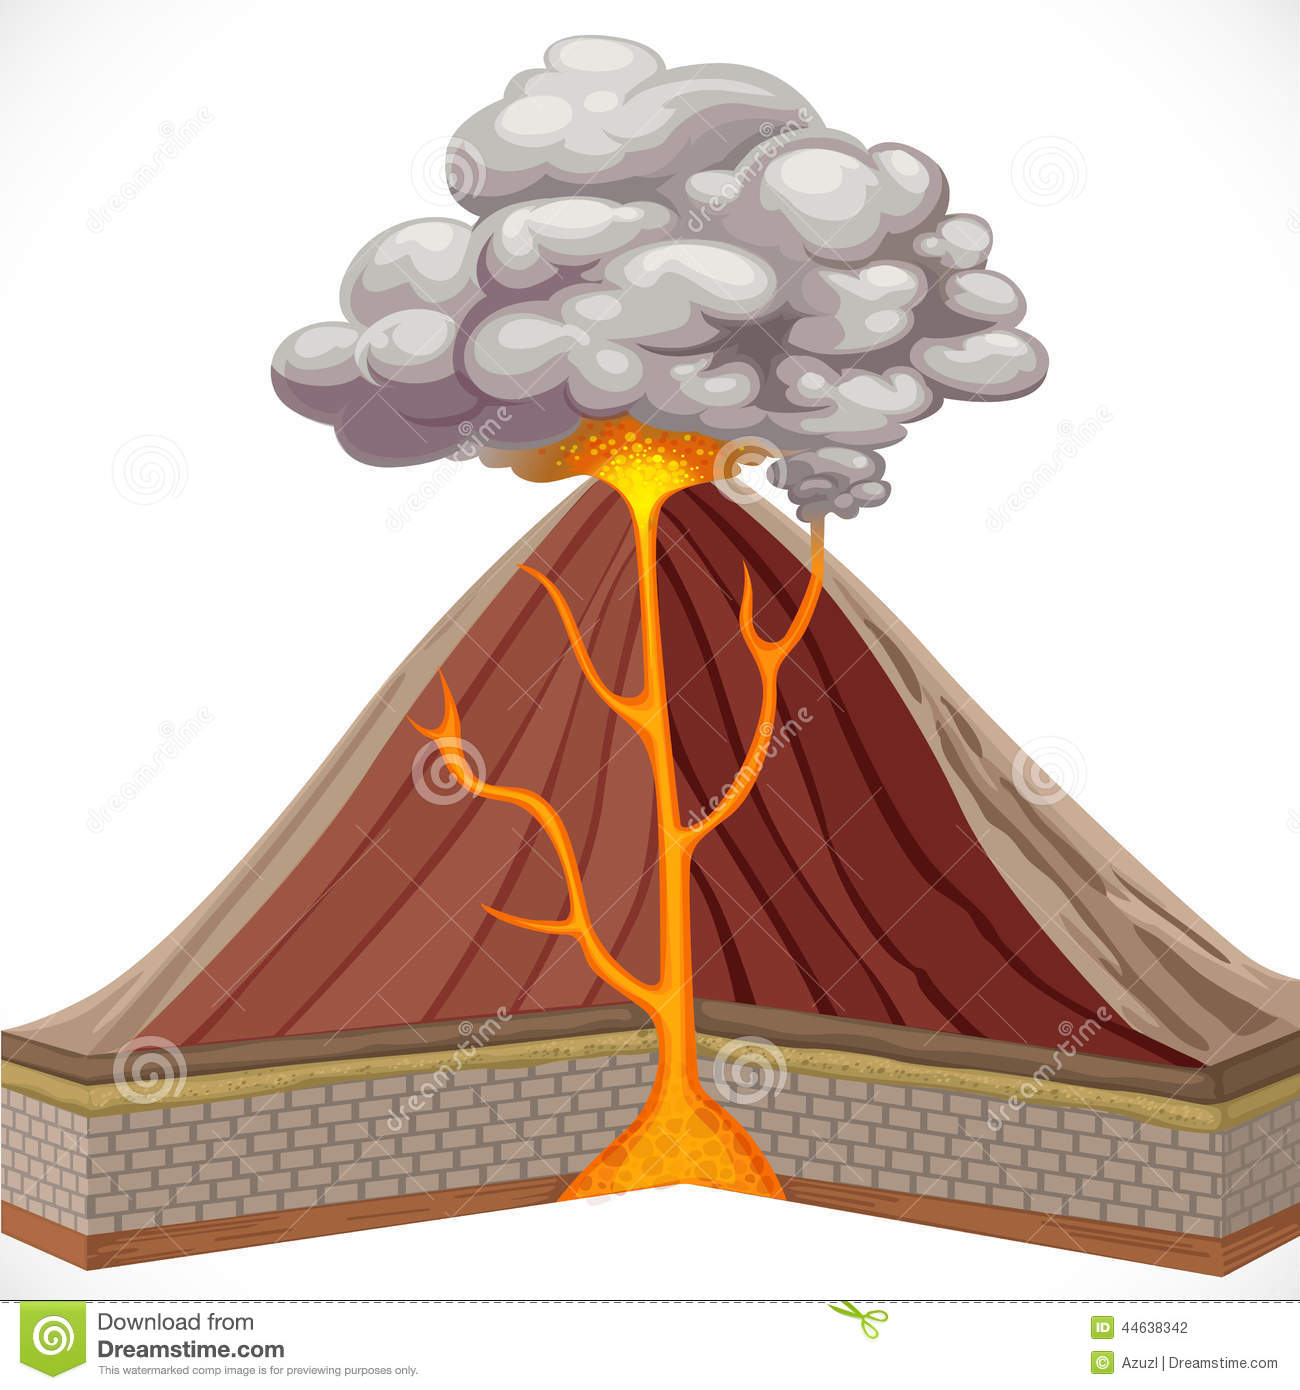 Diagram of volcano stock vector illustration of illustration 44638342 diagram of volcano ccuart Image collections